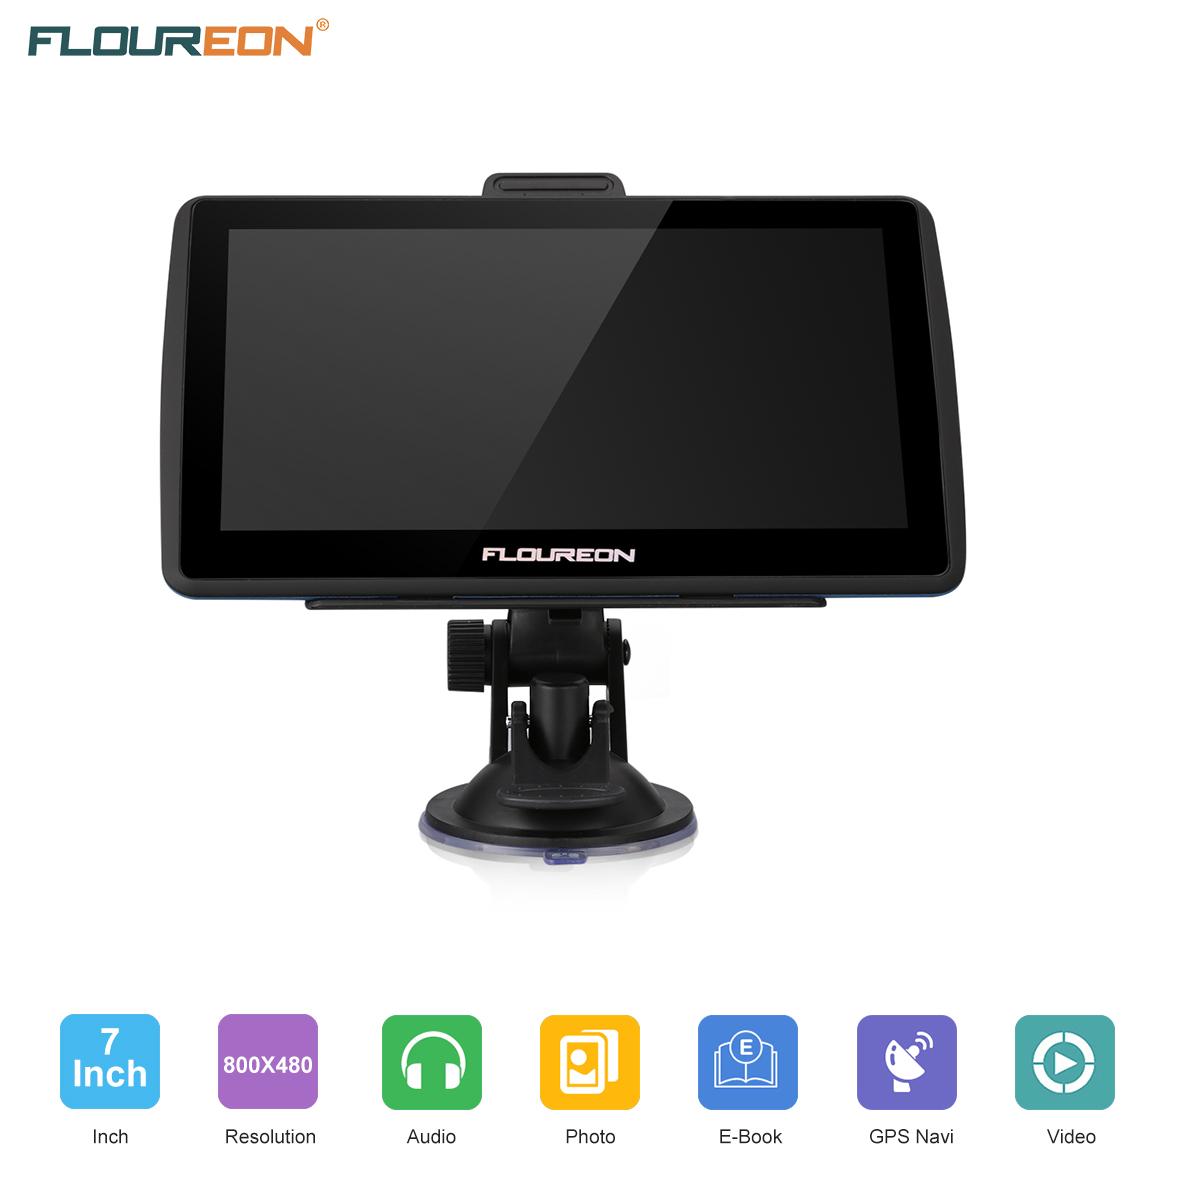 FLOUREON GPS Navigator 7.0 inch GPS Navigation System with Lifetime US/Canada/Mexico Maps Spoken Turn-By-Turn Directions Direct Access Driver Alerts For Car Vehicle Truck Taxi